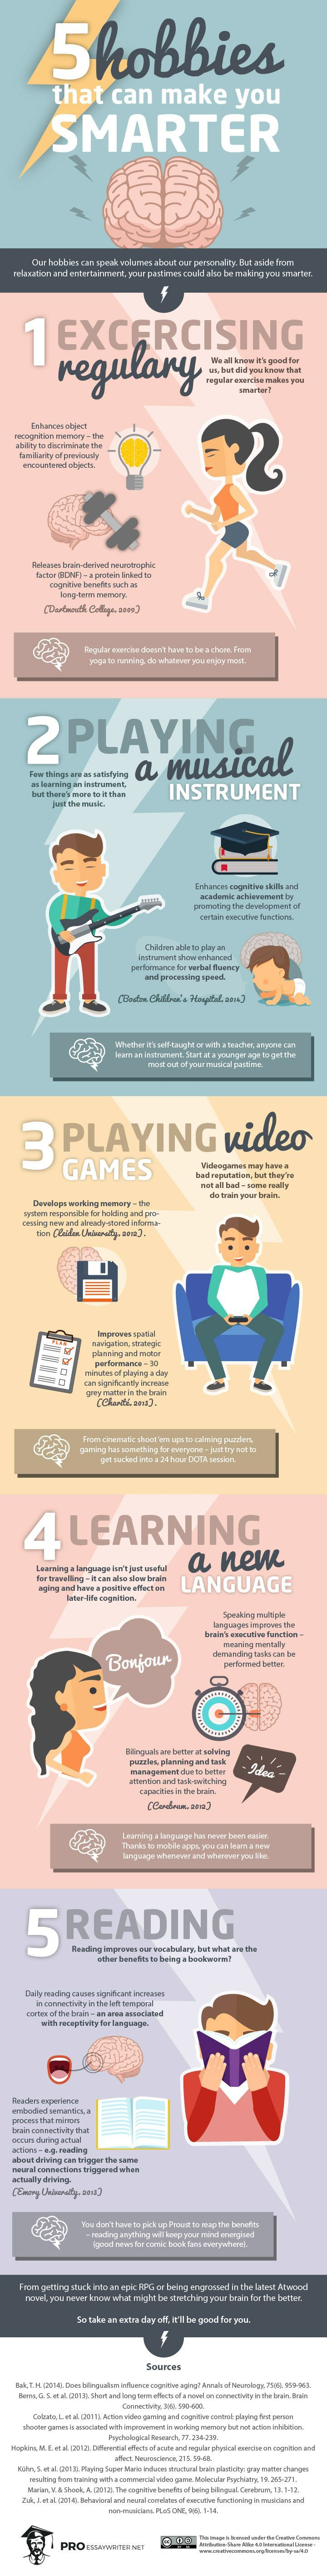 Exercising regularly, reading and video games can help increase your logic skills as well as keep your moods at bay.   THE UT.LAB   Loves Innovative Ideas *